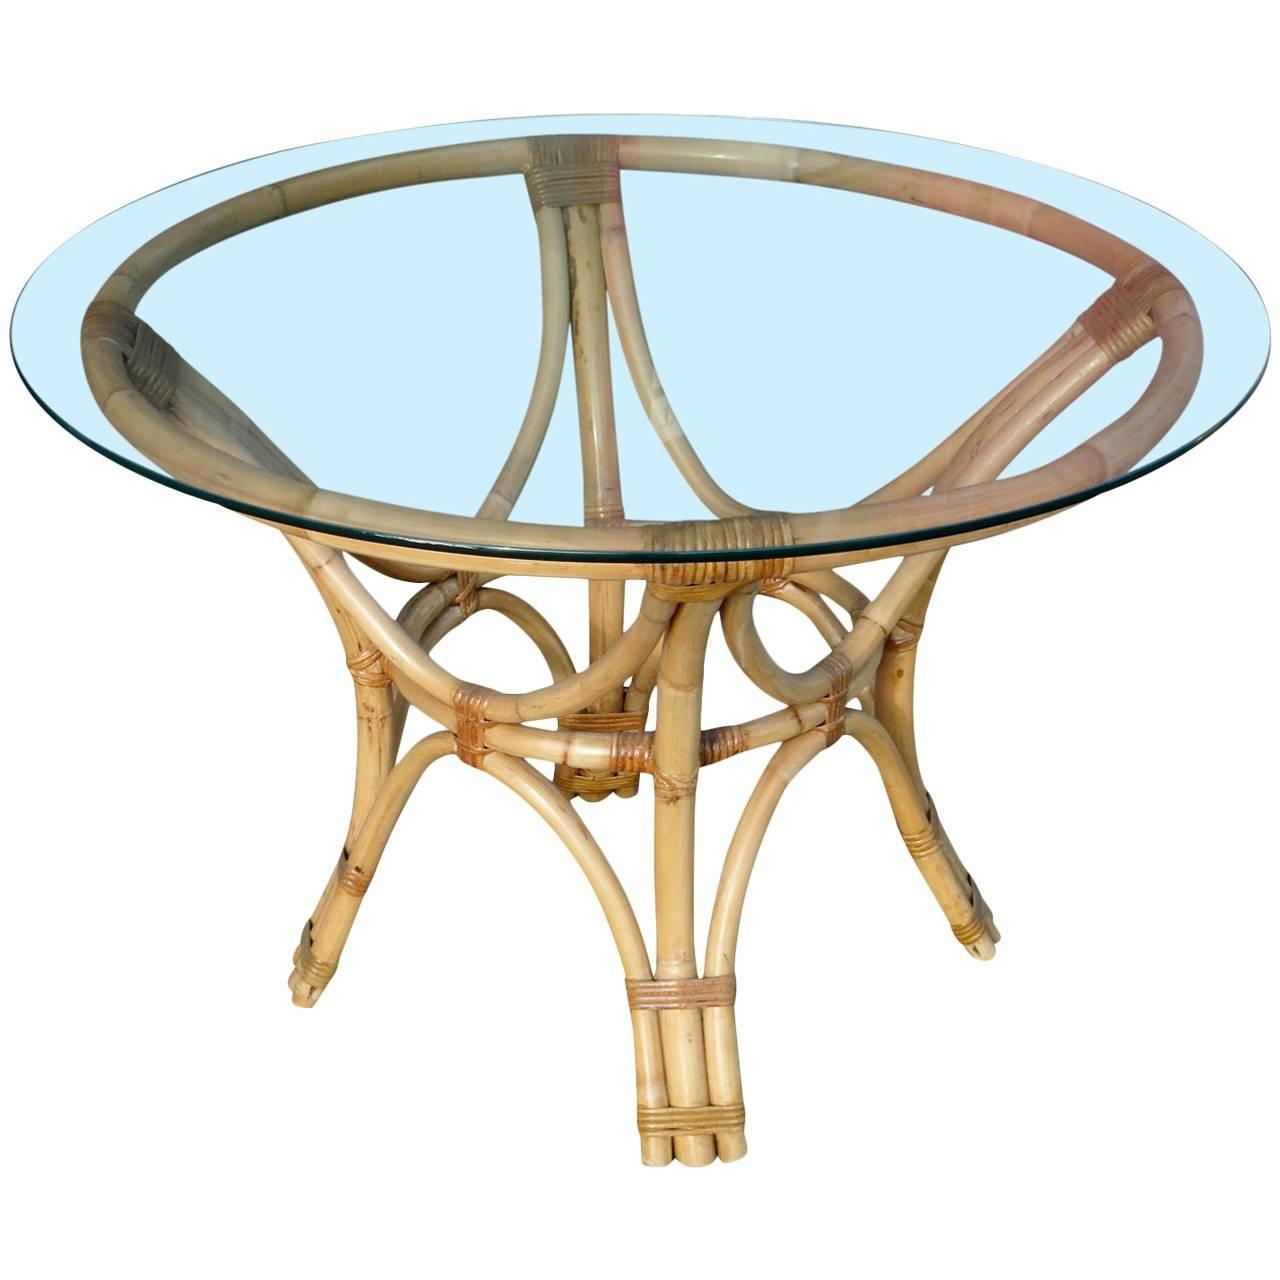 High Quality Restored Rattan Bentwood Dining Table With Round Glass Top For Sale At  1stdibs